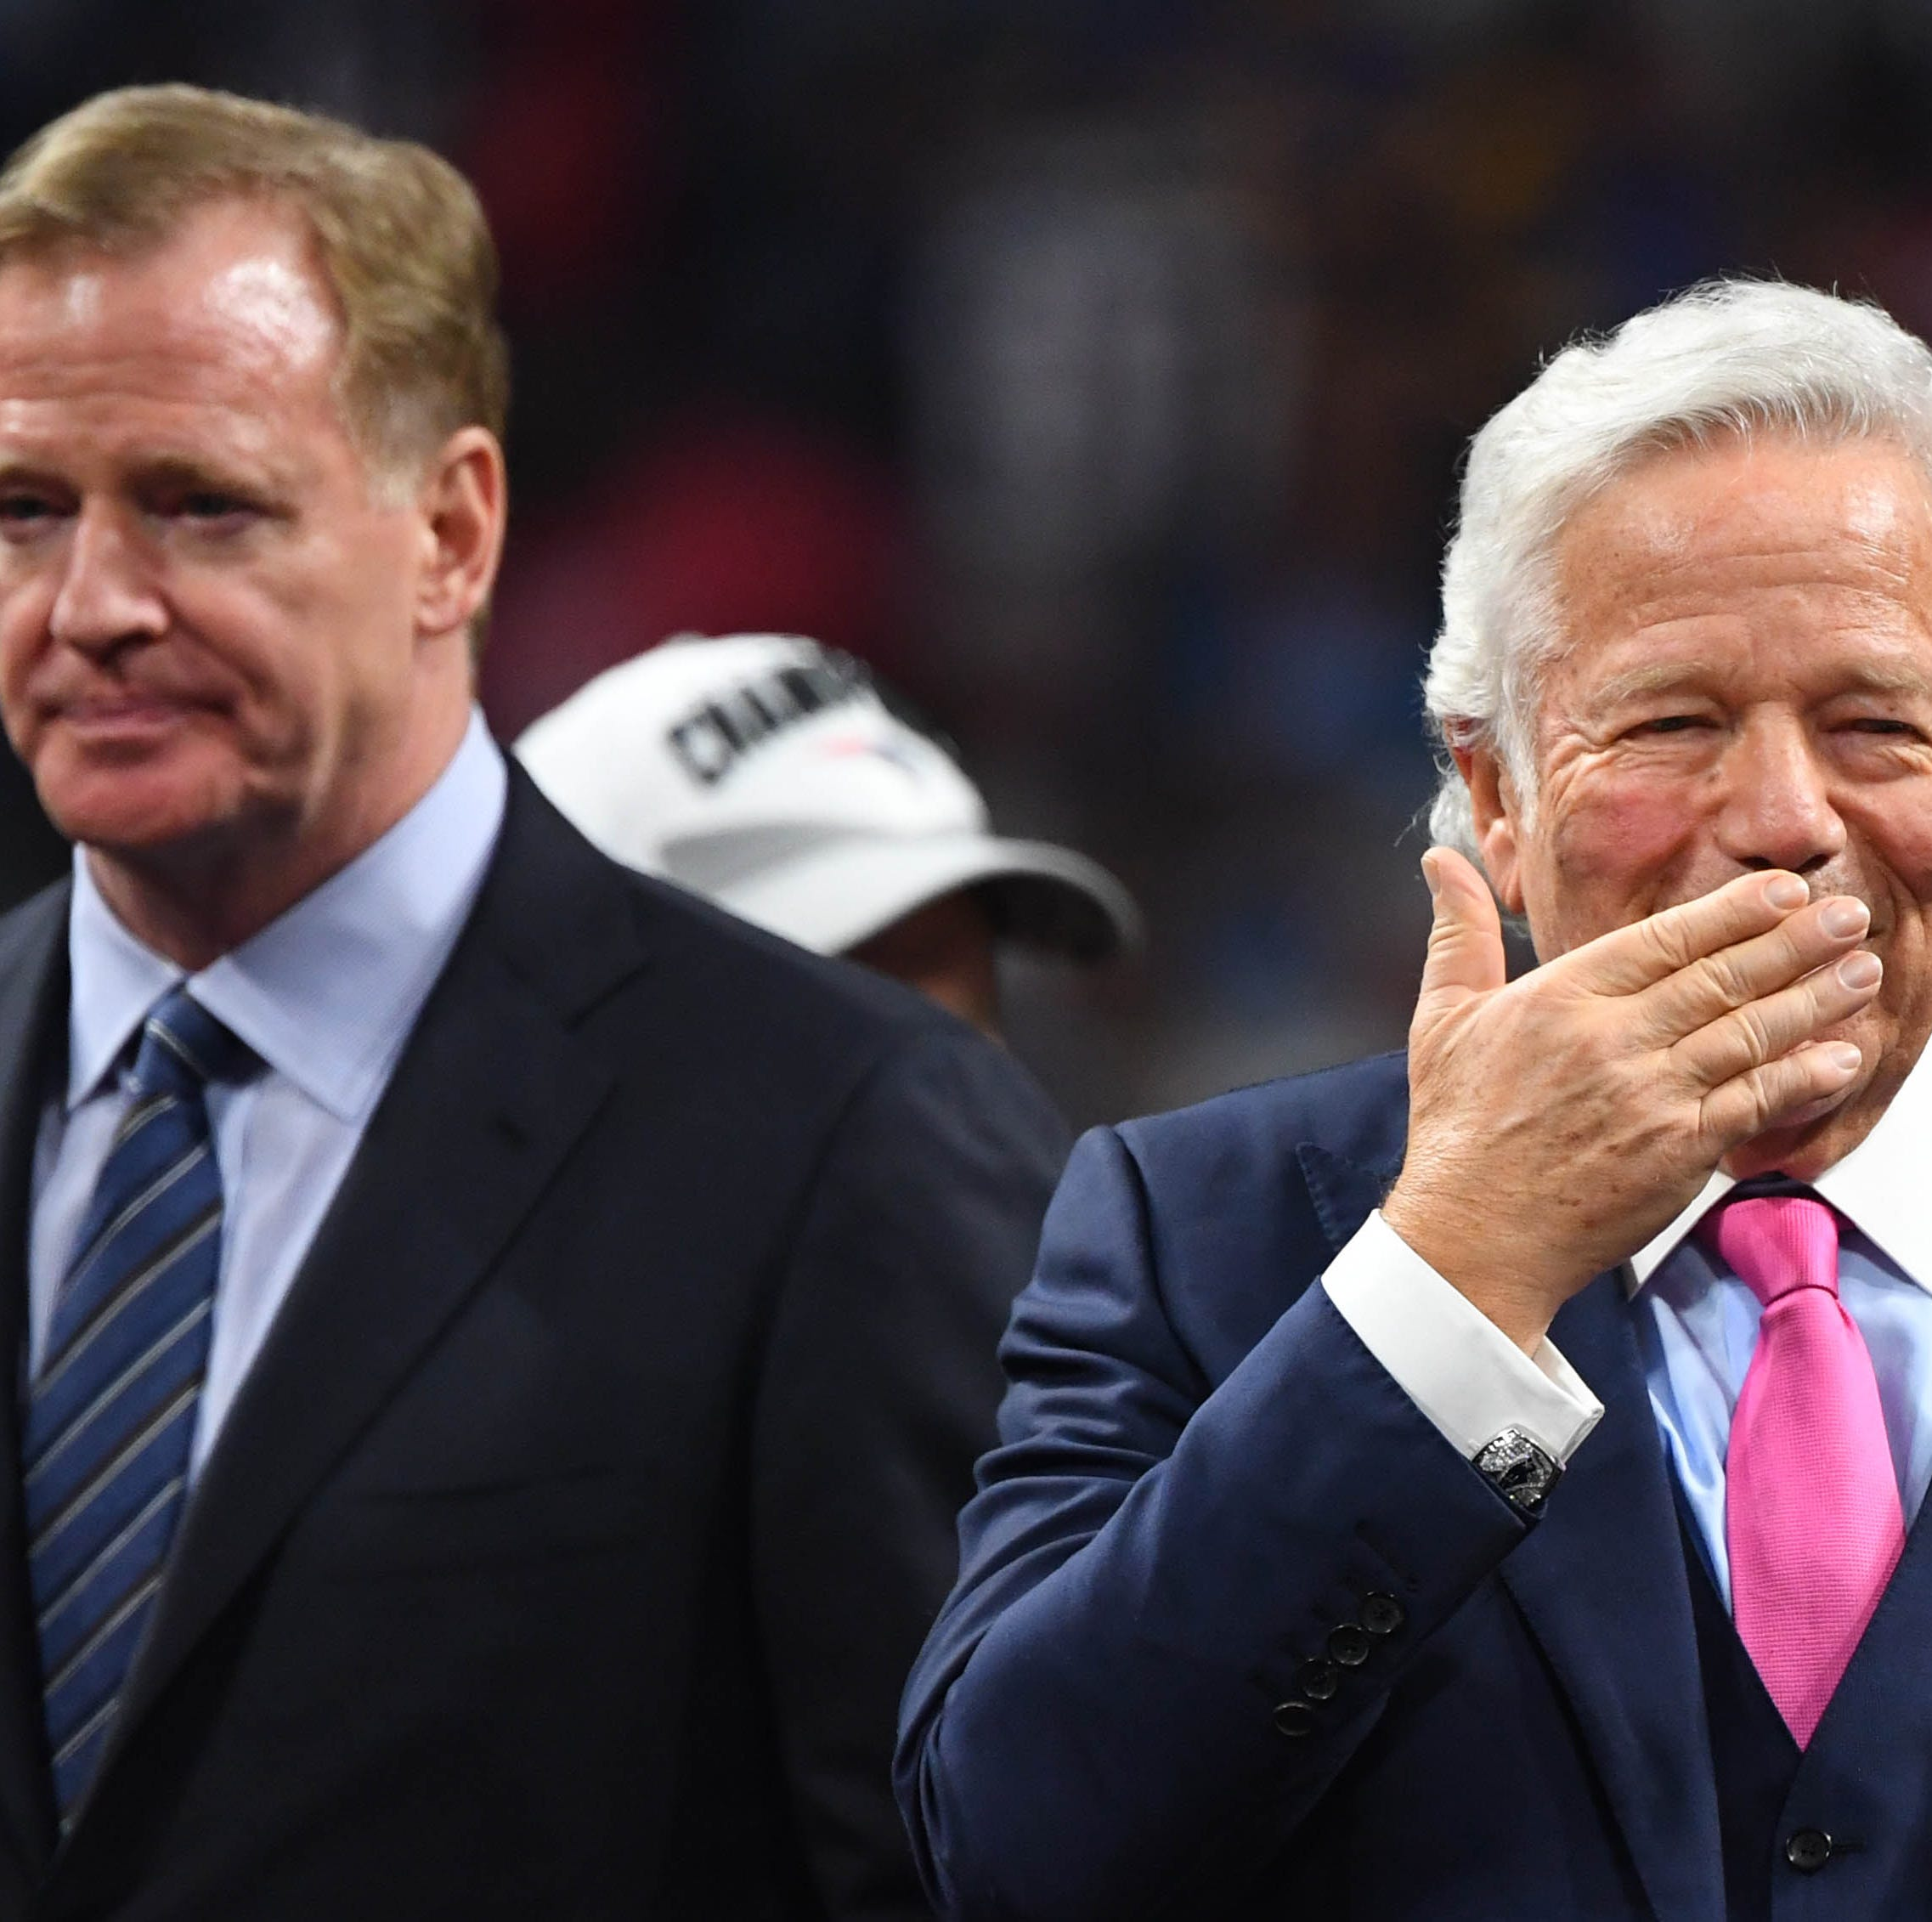 Robert Kraft gets busted and Buffalo Bills fans go crazy on Twitter